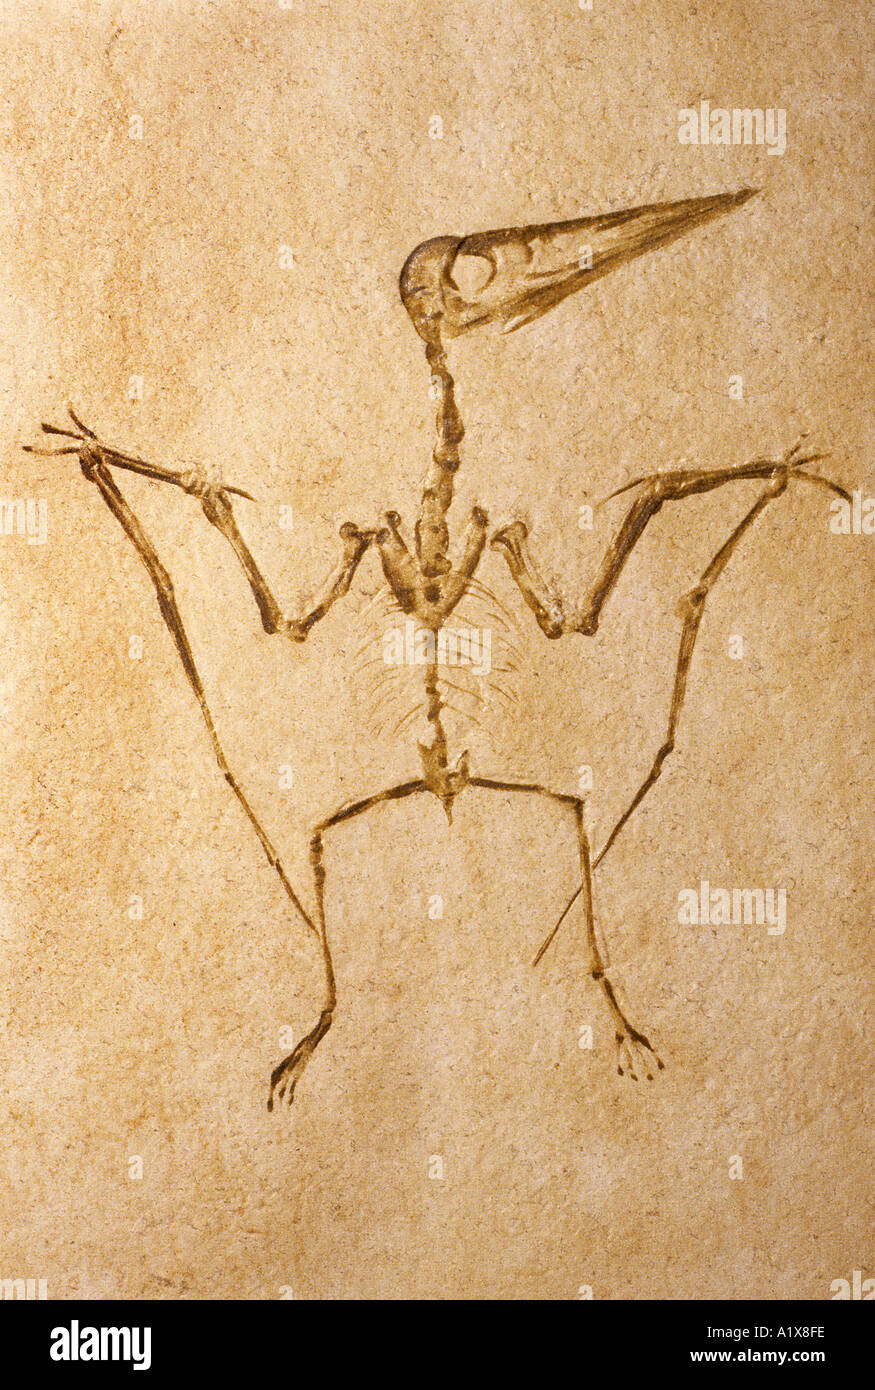 Pterodactyl Pretodactylus spectabilis fossil Upper Jurassic from Western Germany - Stock Image